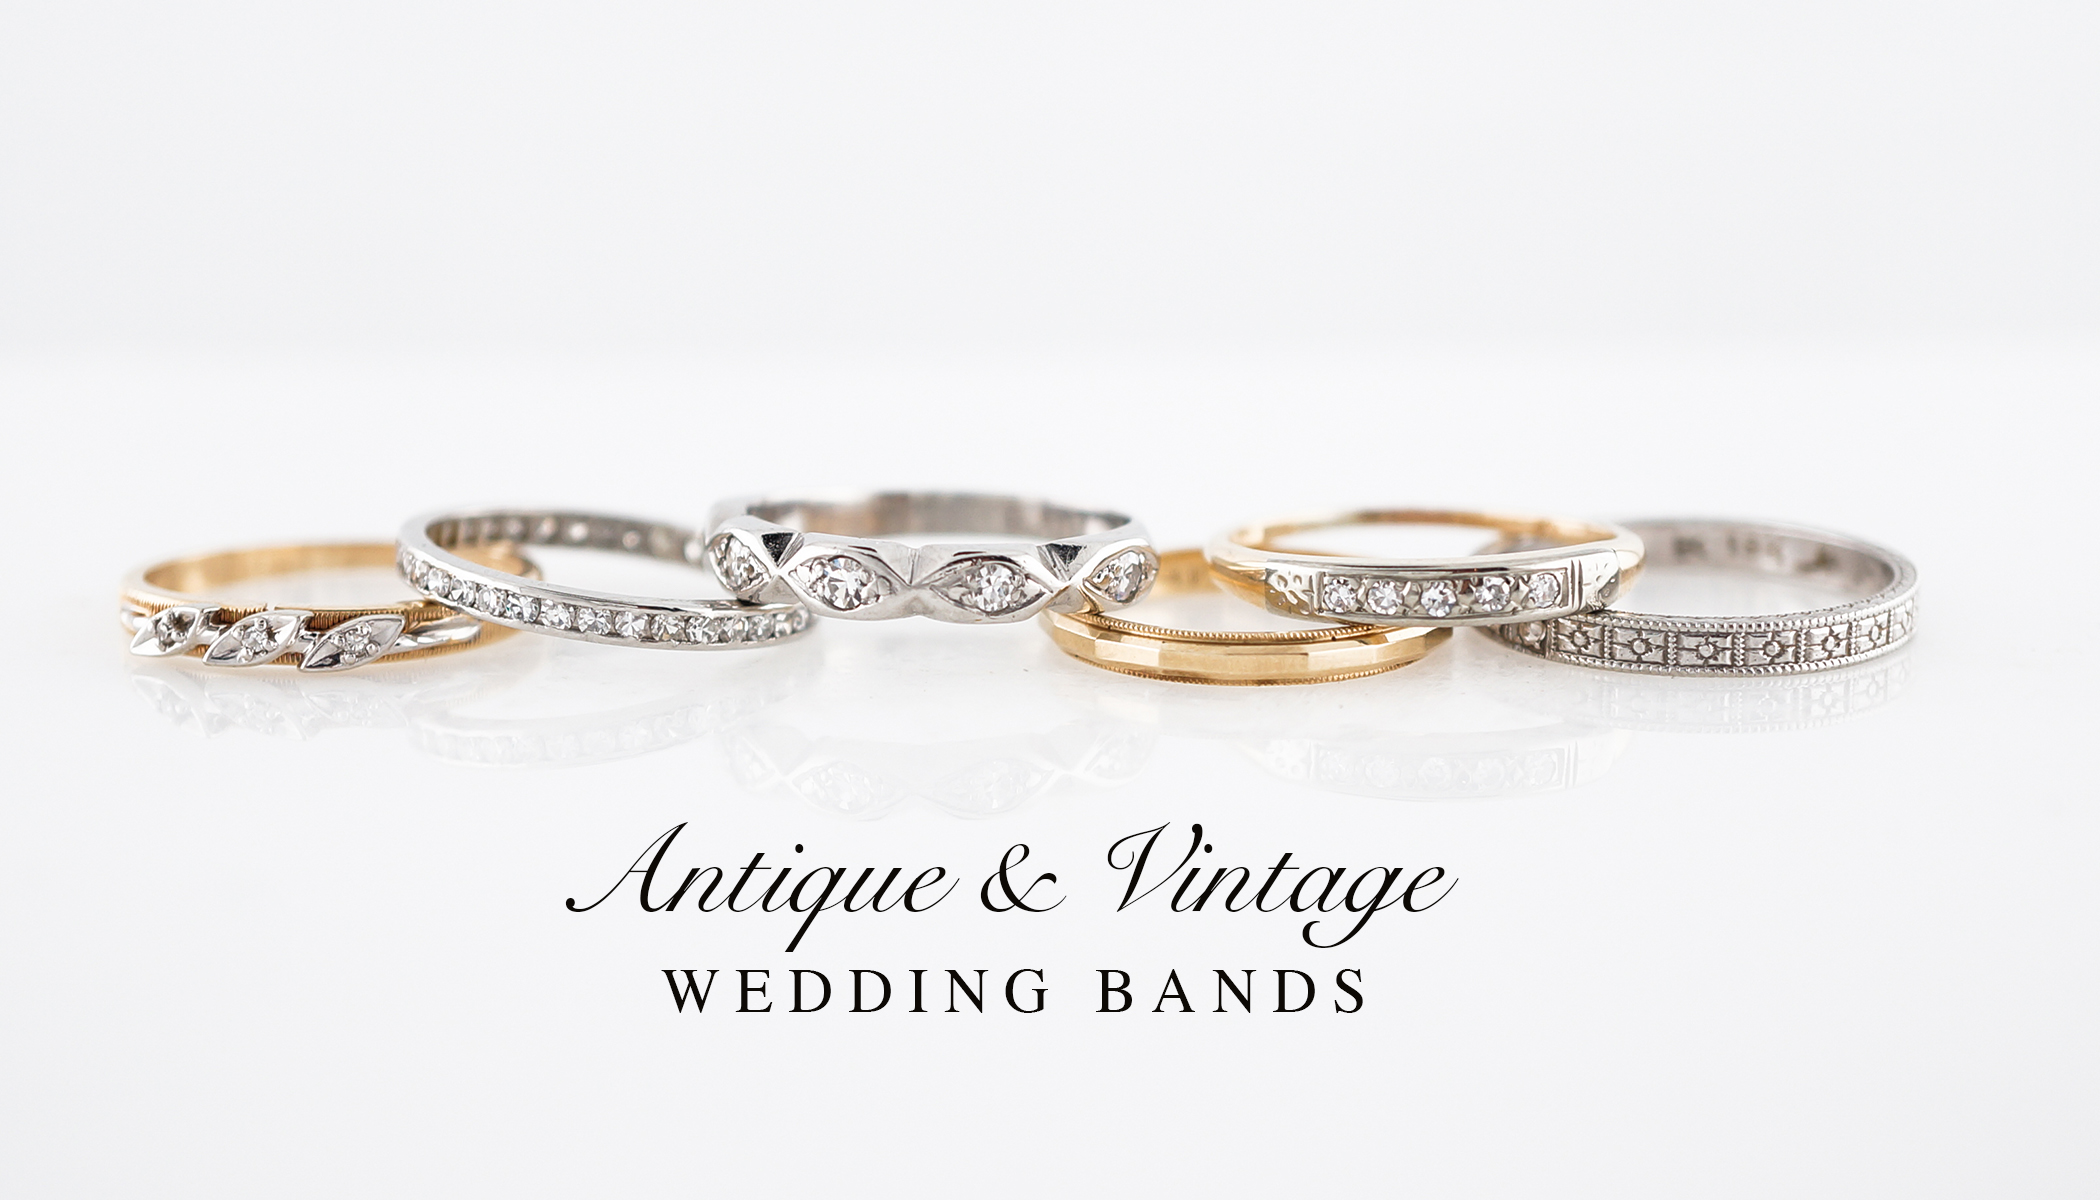 Antique_Wedding_Band_Vintage_Wedding_Band_Art_Deco_Wedding_Band_Diamond_Wedding_Band_Engraved_Wedding_Band_Orange_Blossom_Wedding_Band_FiligreeJewelers_Minneapolis_North_loop